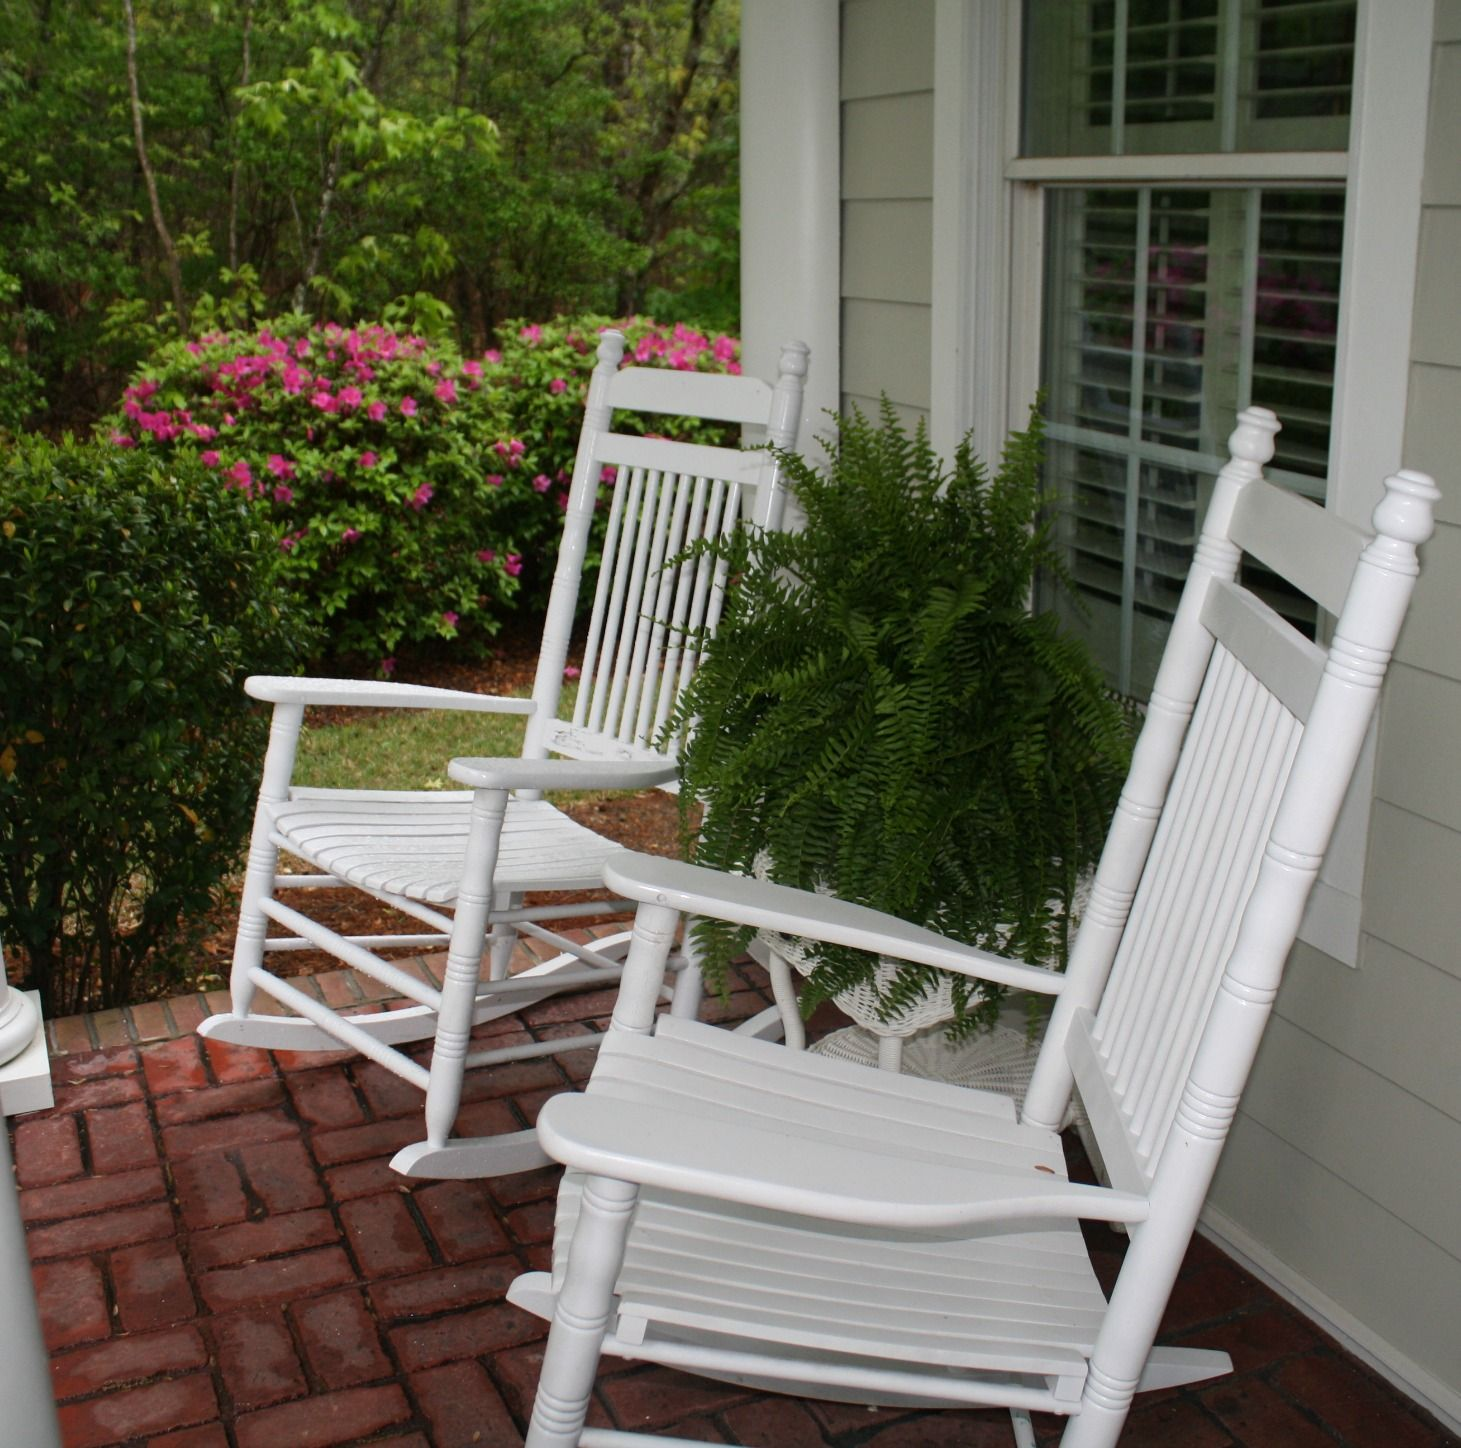 Teal Front Door Rocking Chair Porch Front Porch Furniture Porch Chairs